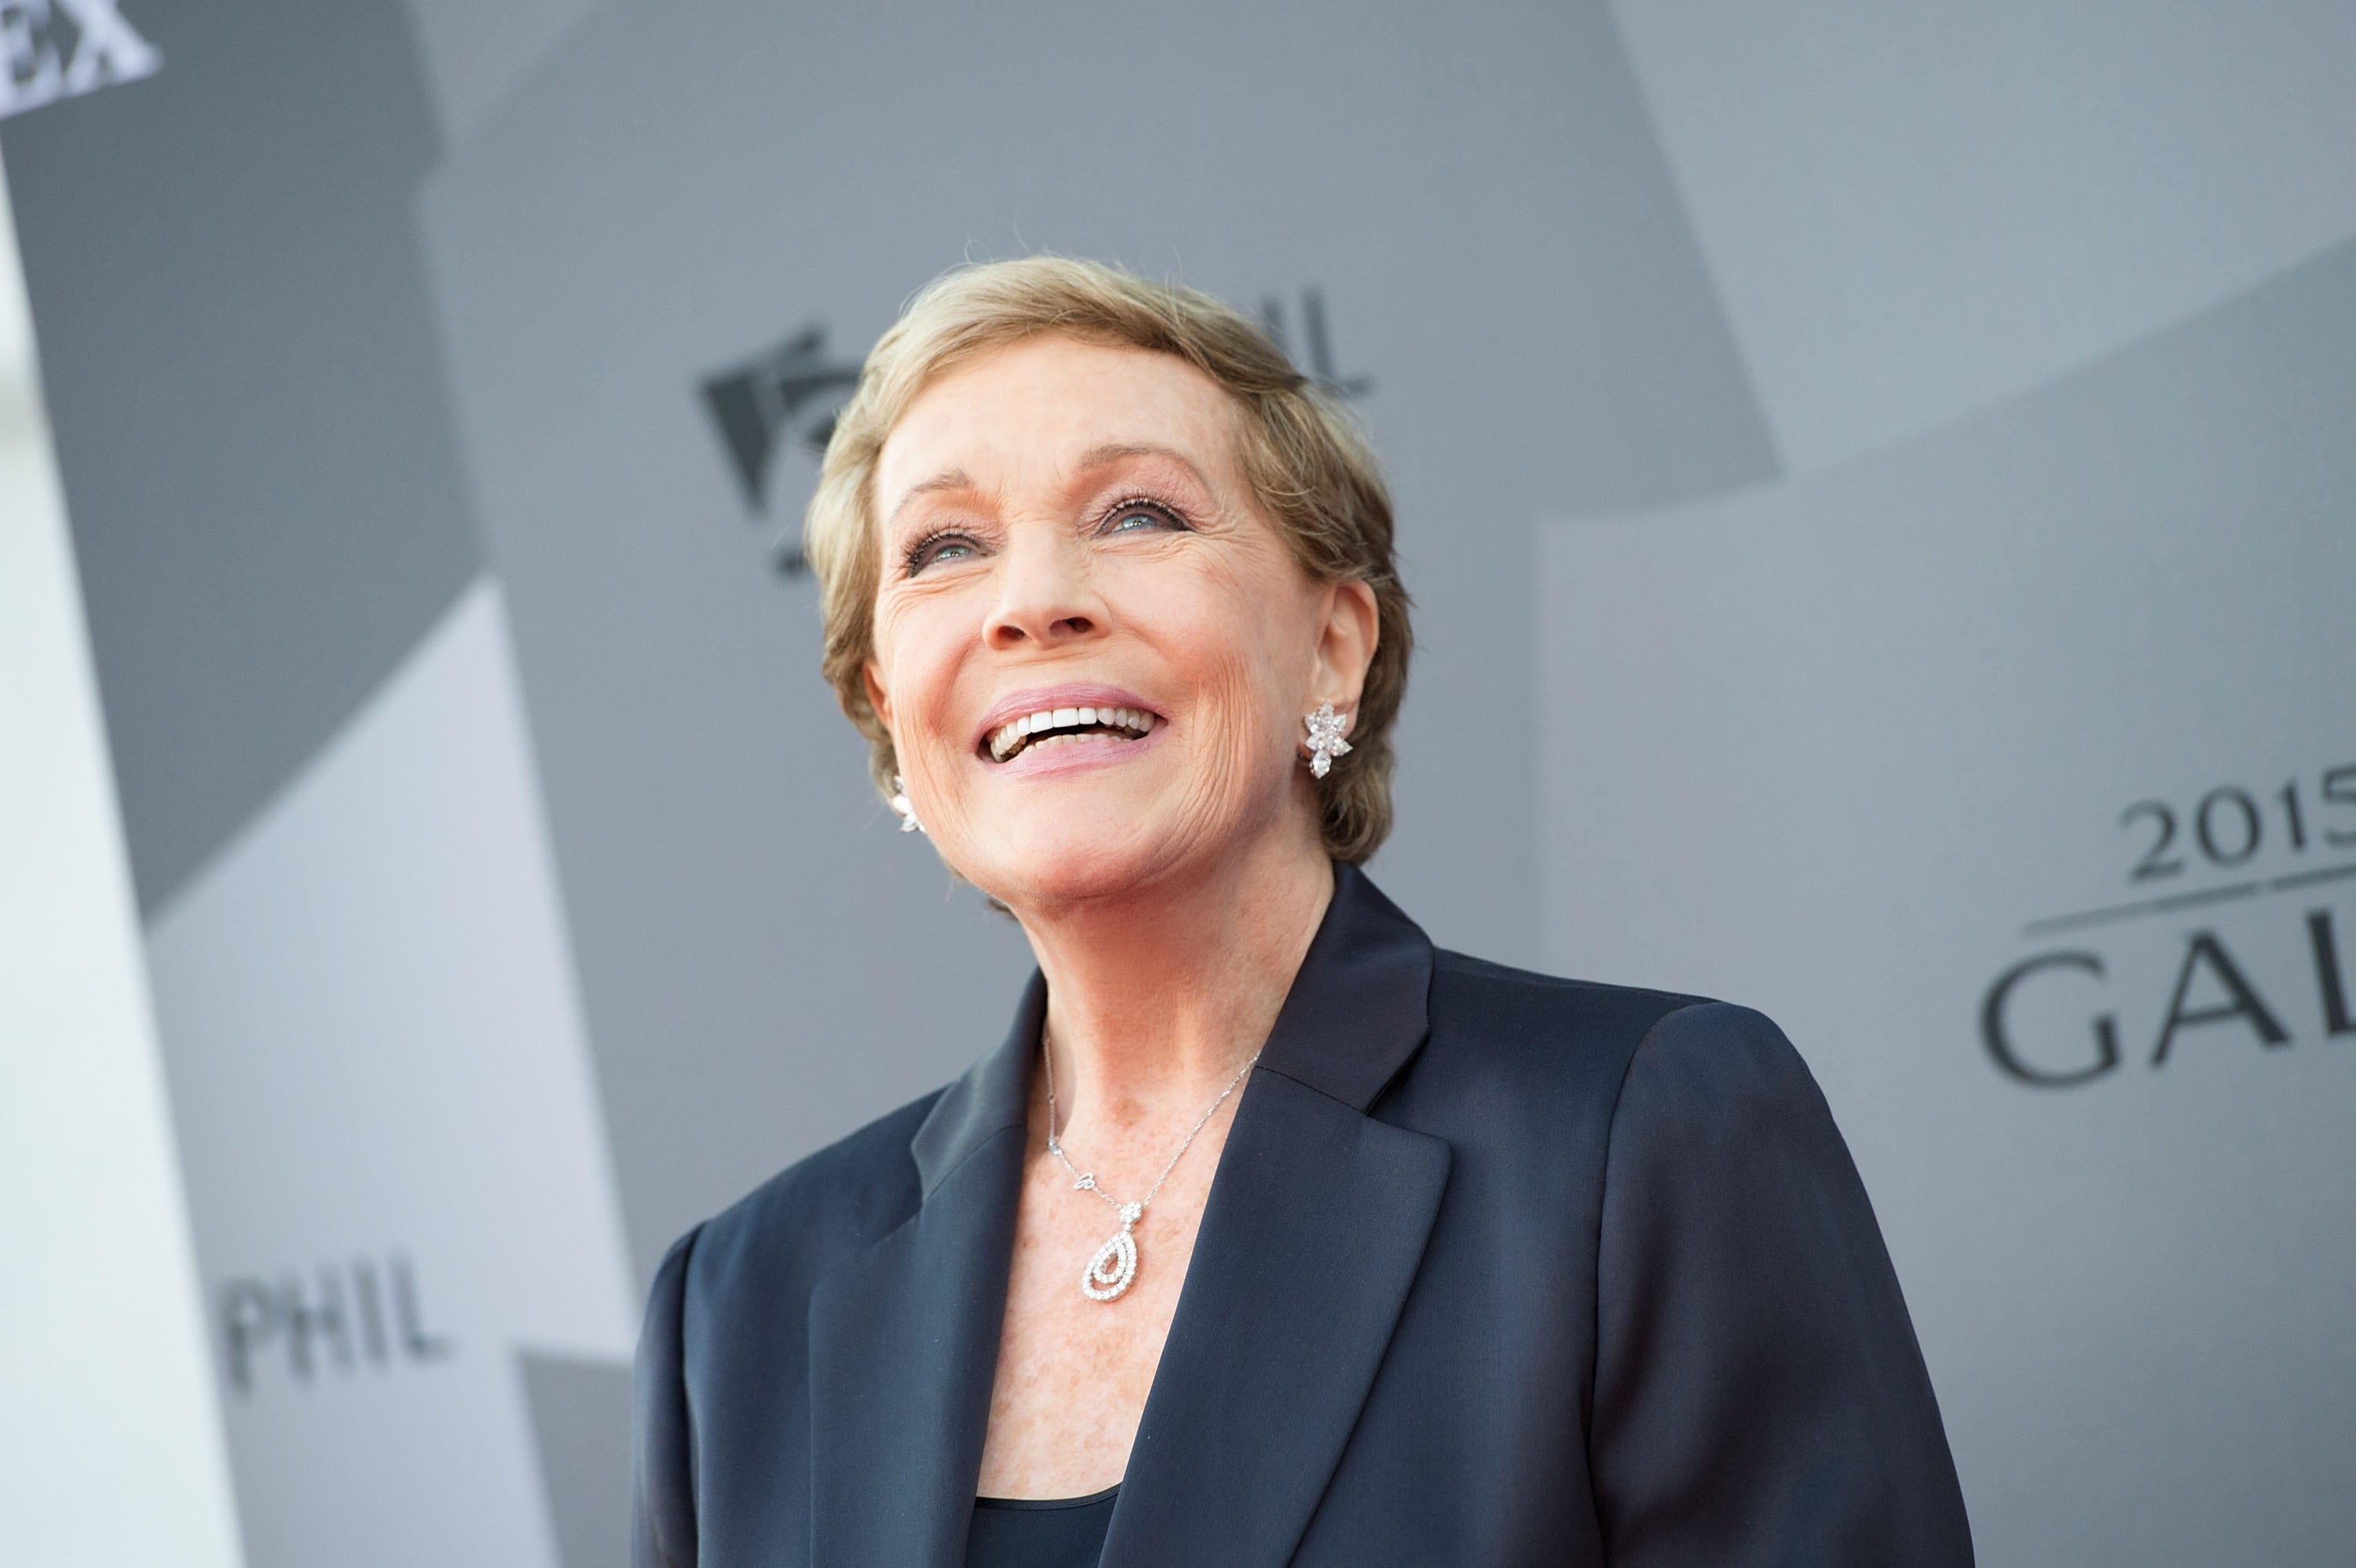 Julie Andrews says therapy saved her life in a way: Theres no harm in sharing